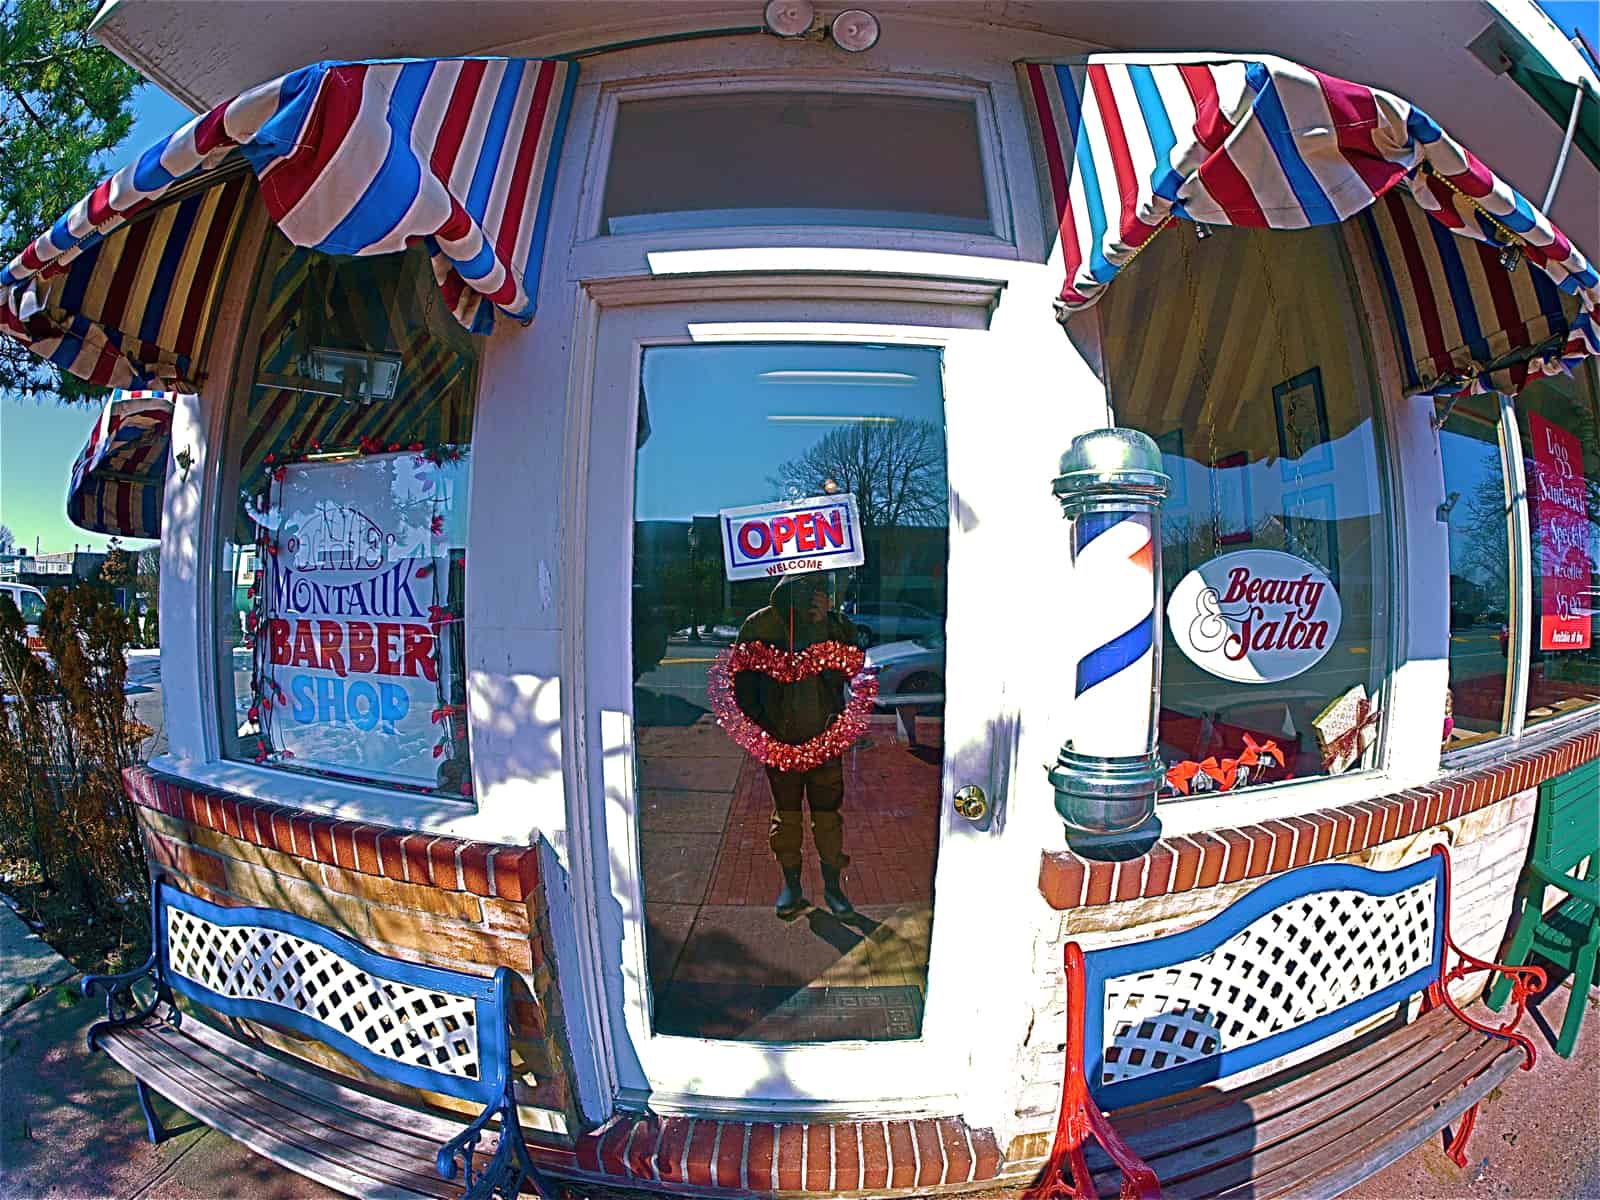 The Montauk Barber Shop, February 12, 2013, Montauk NY, photo by Sailing Montauk